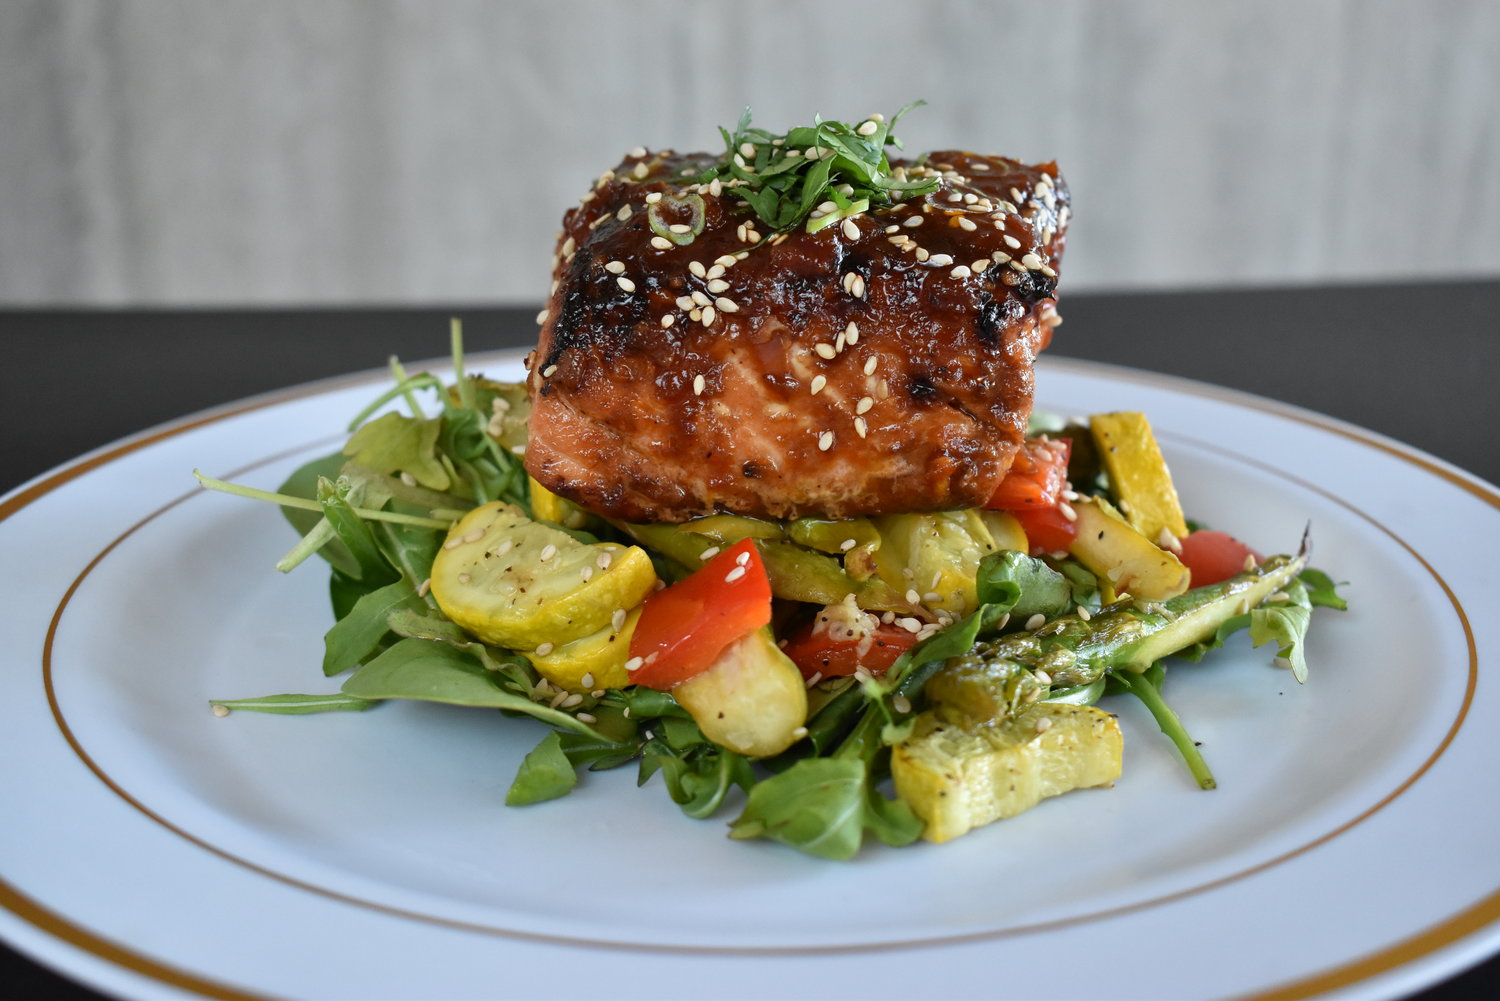 GINGER-SESAME GLAZED SALMON